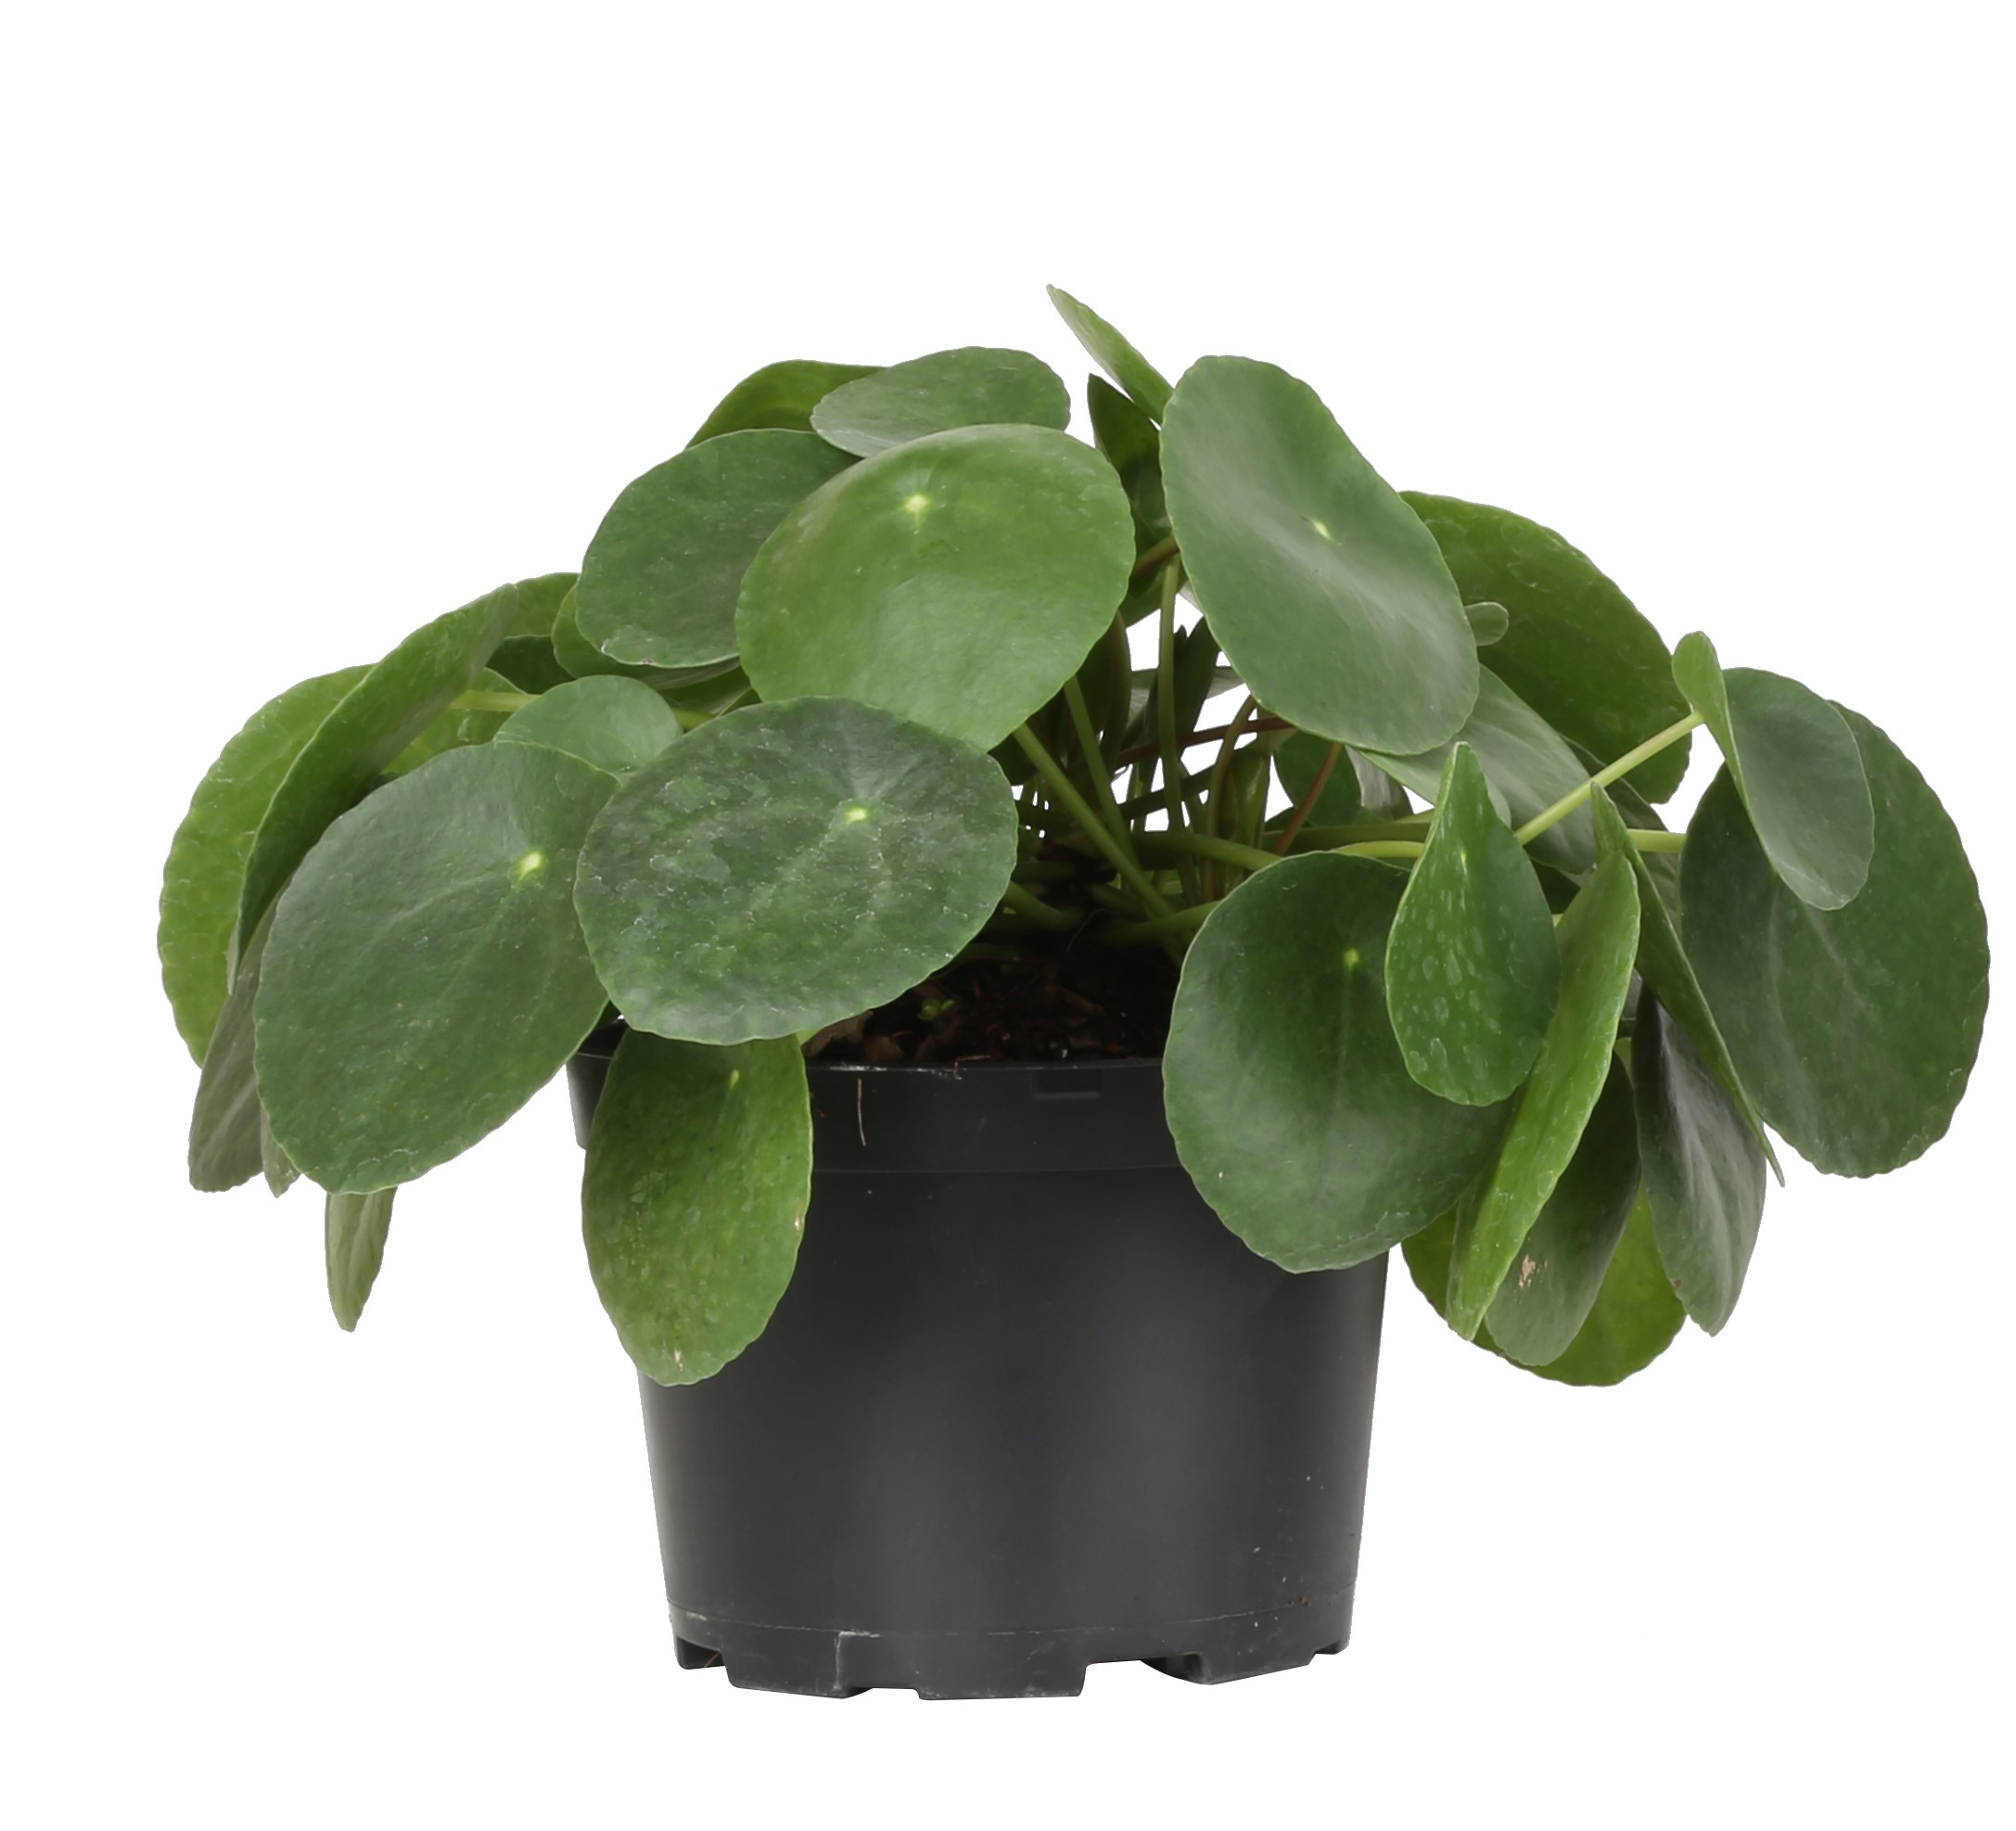 Costa Farms Live Indoor 14in Chinese Money Plant Grower Pot Walmart Com Walmart Com